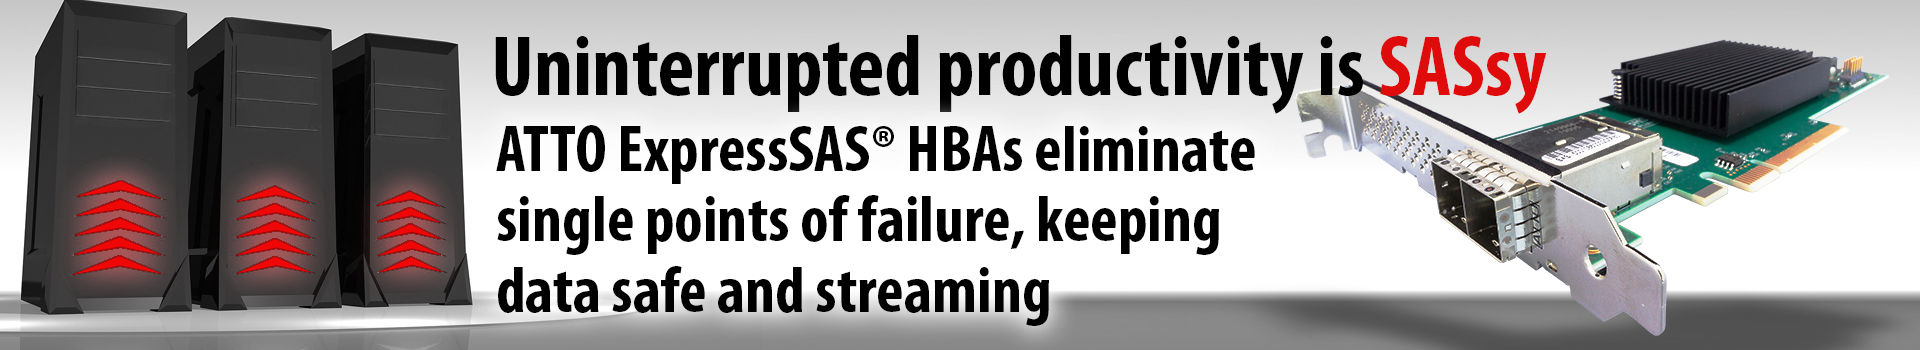 ATTO's ExpressSAS® HBAs and RAID adapters eliminate single points of failure, keeping data safe and streaming